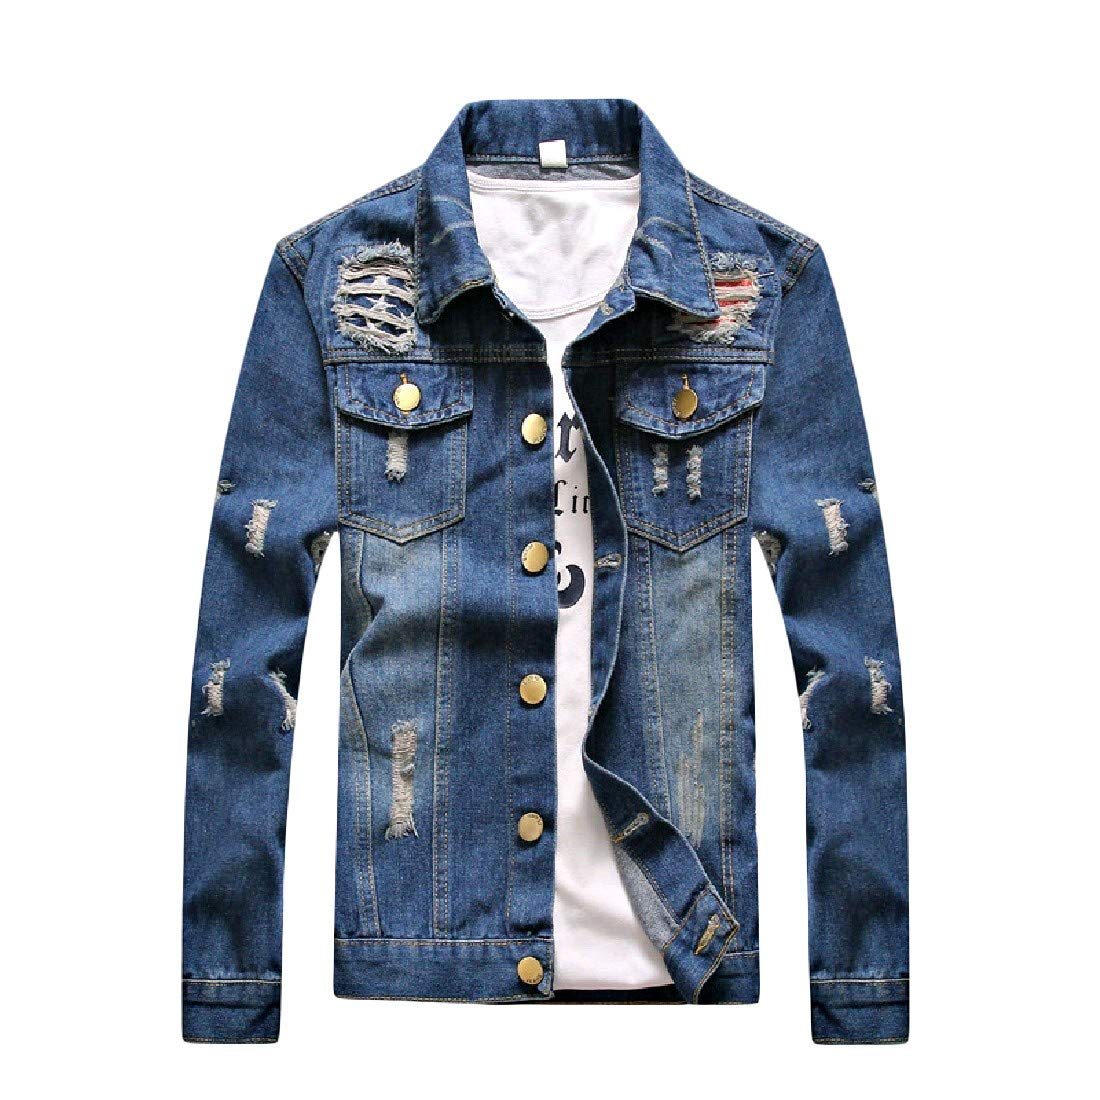 Abetteric Mens Casual Casual Plus Size Wash Denim Trench Coat Jacket